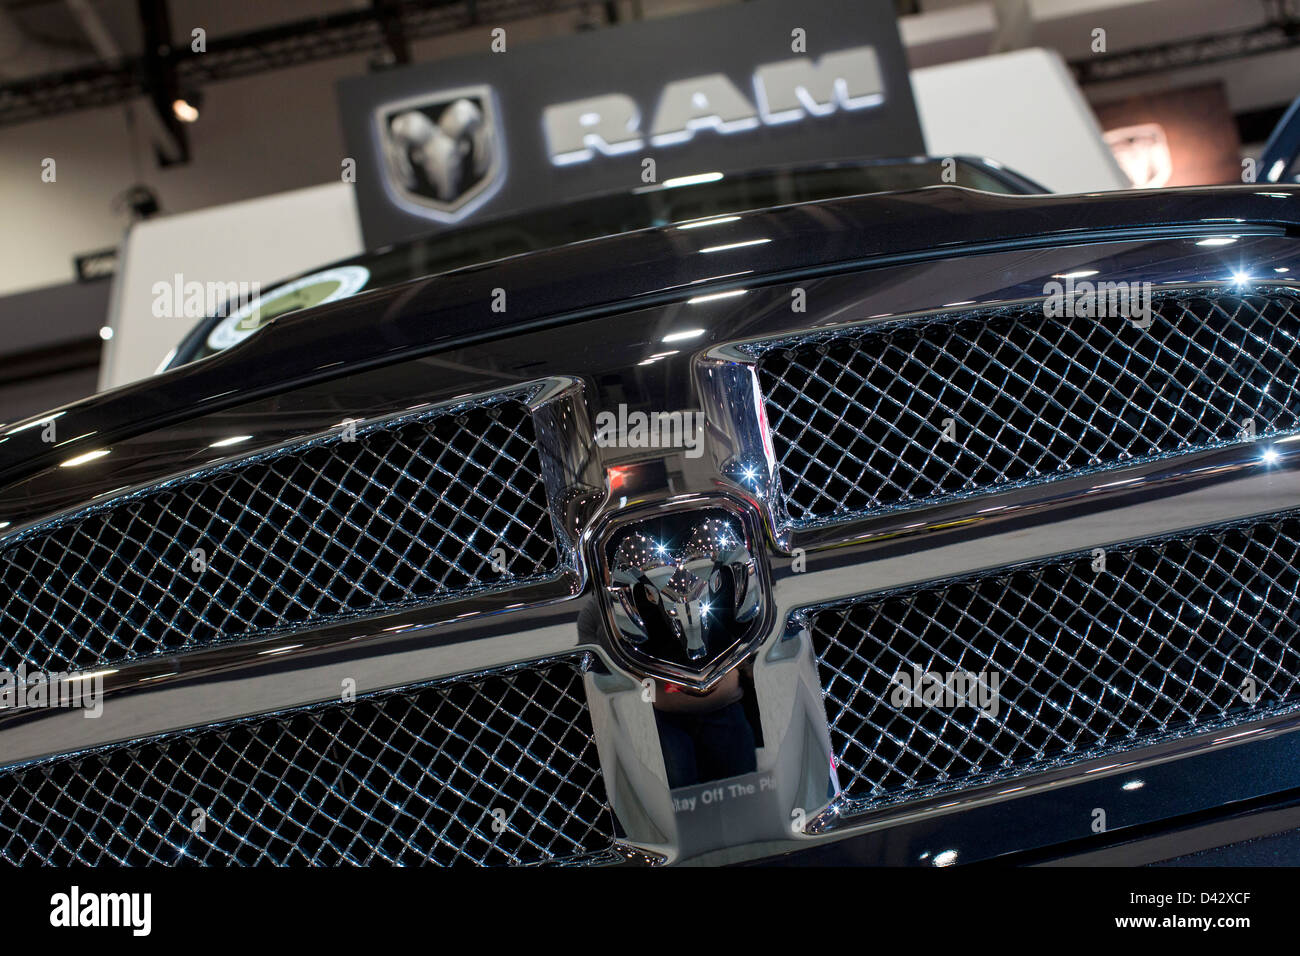 A Dodge Ram pick-up truck on display at the 2013 Washington, DC Auto Show. - Stock Image